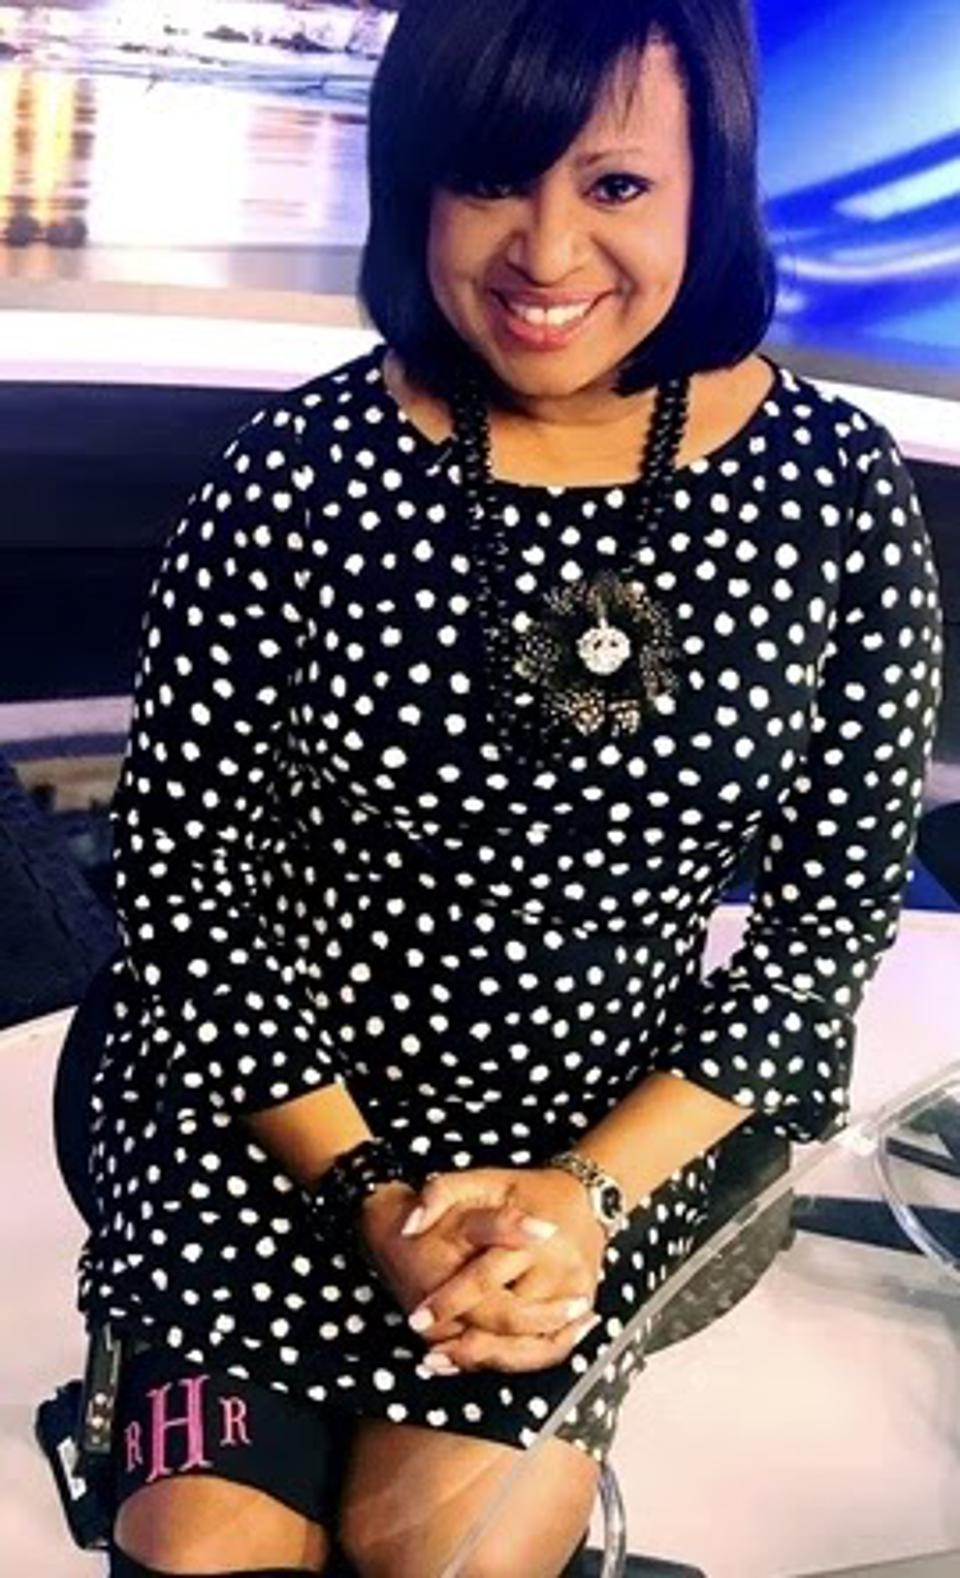 A Black woman in a black and white polka dot dress smiles on a television news set.